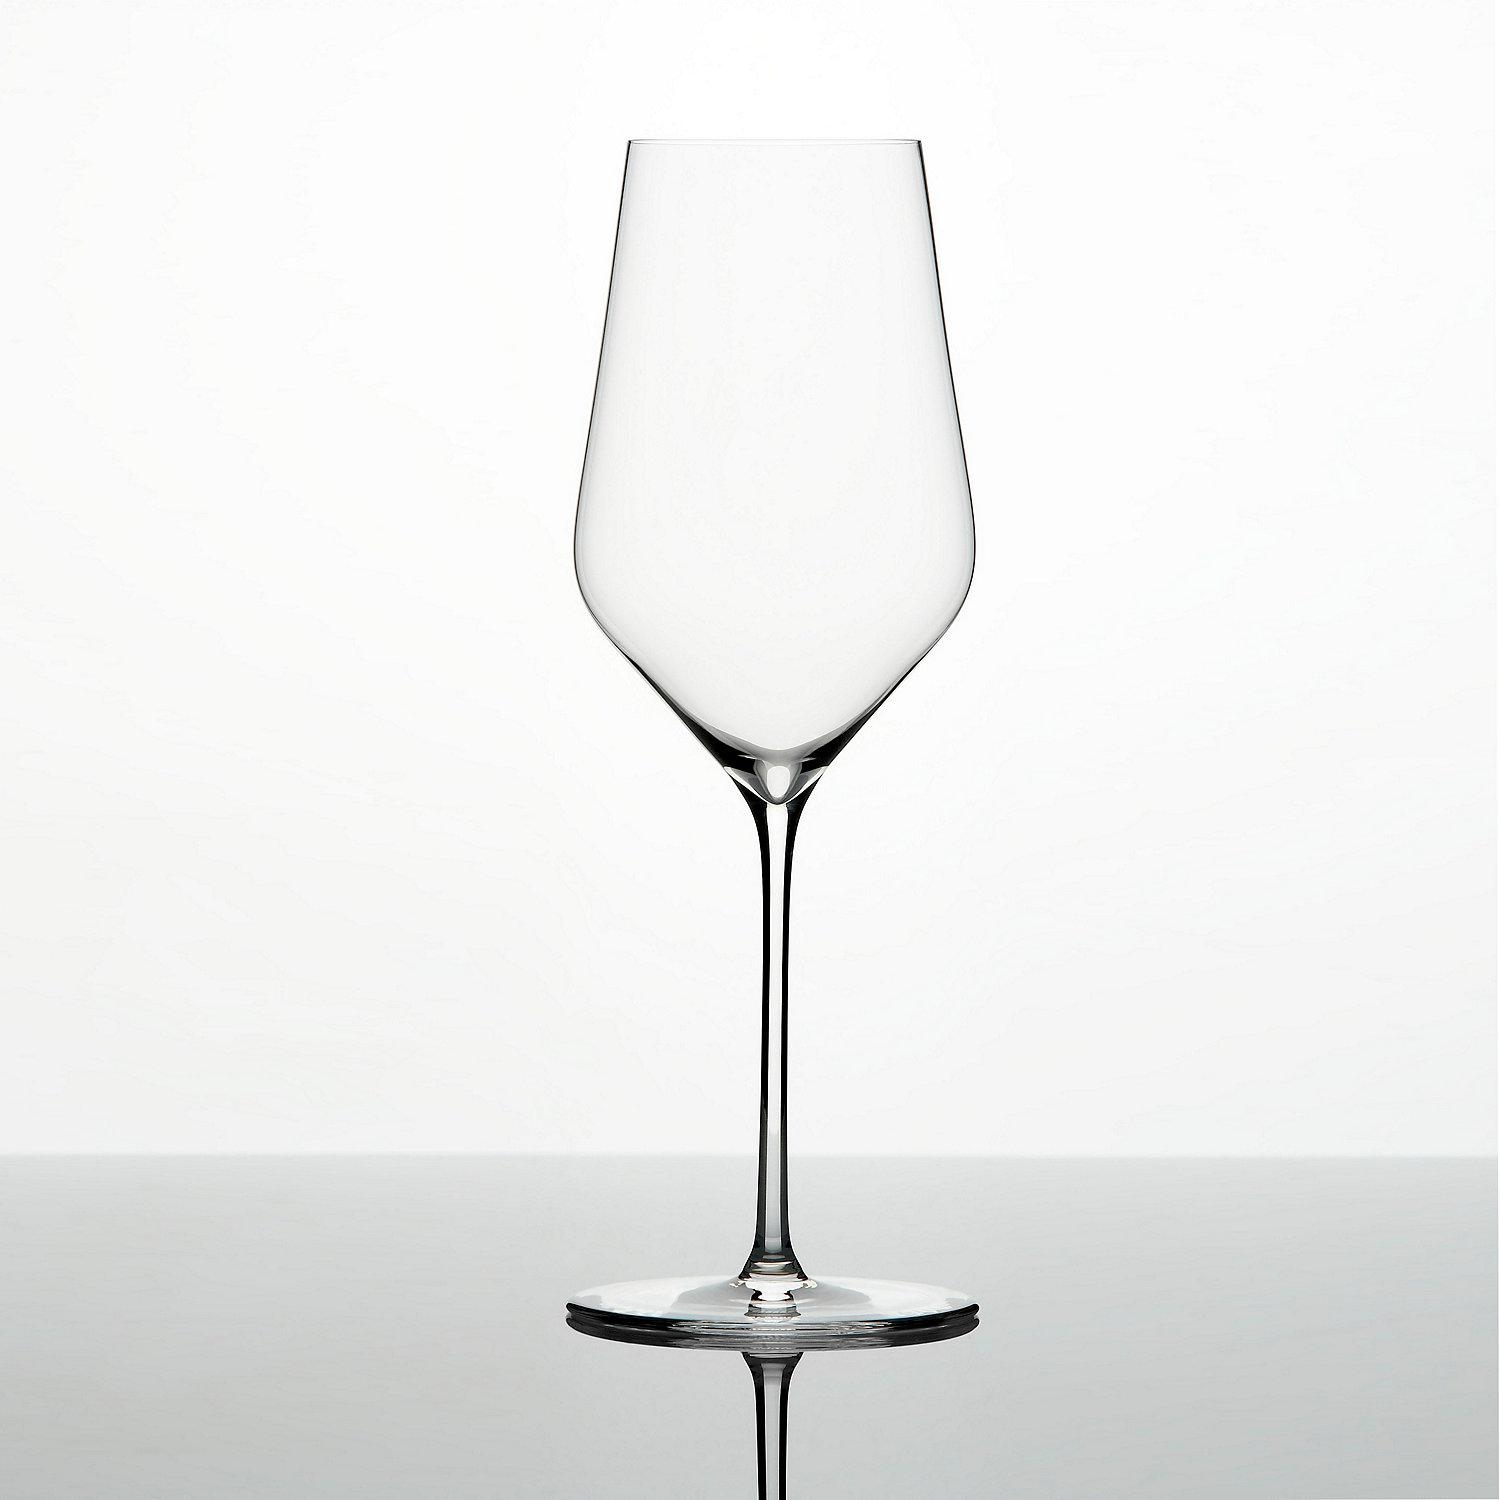 Zalto Denk'art White Wine Glass - Wine Enthusiast intended for Martini Glass Wall Art